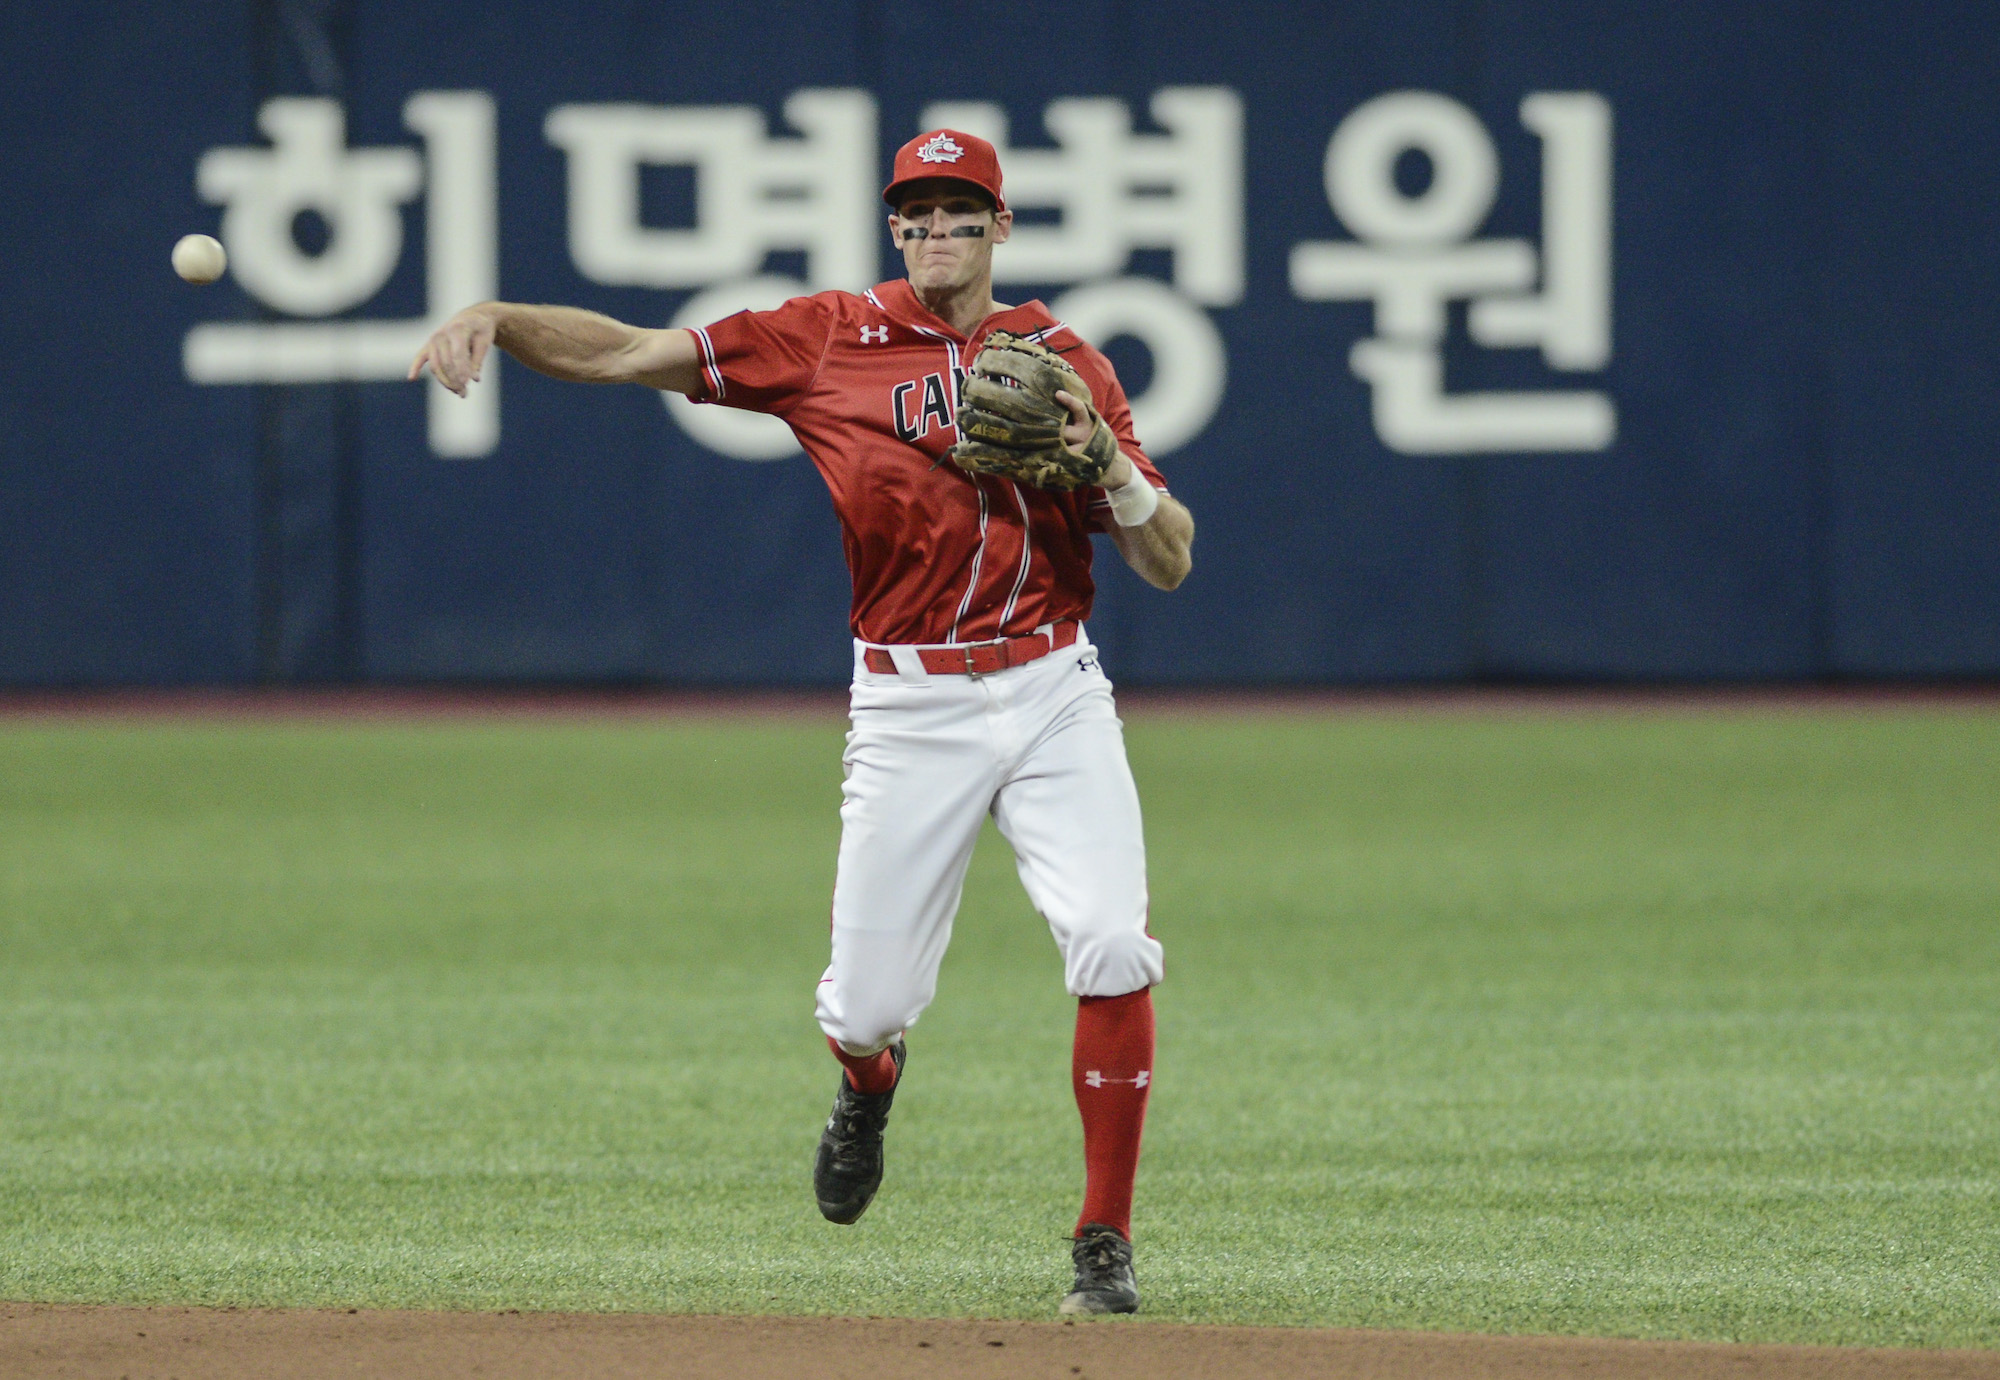 PREMIER12: Korea hands Canada first loss